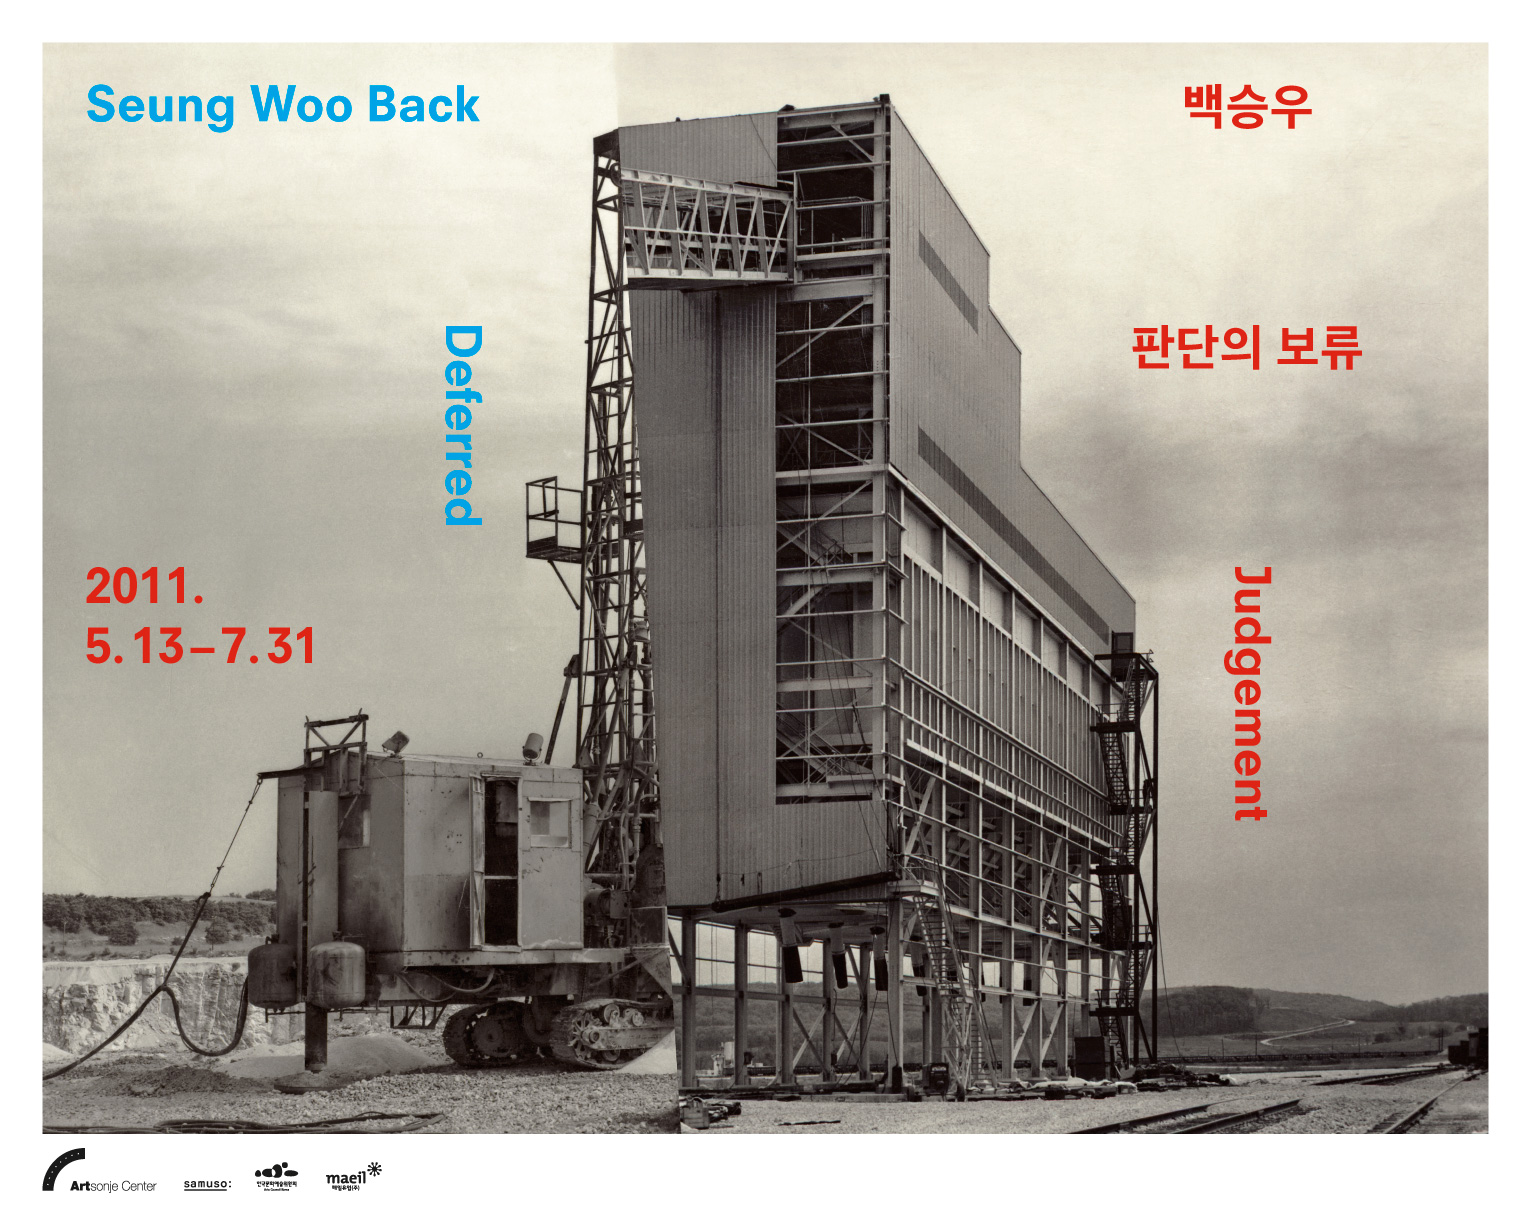 Seung Woo Back: On-Site Banner